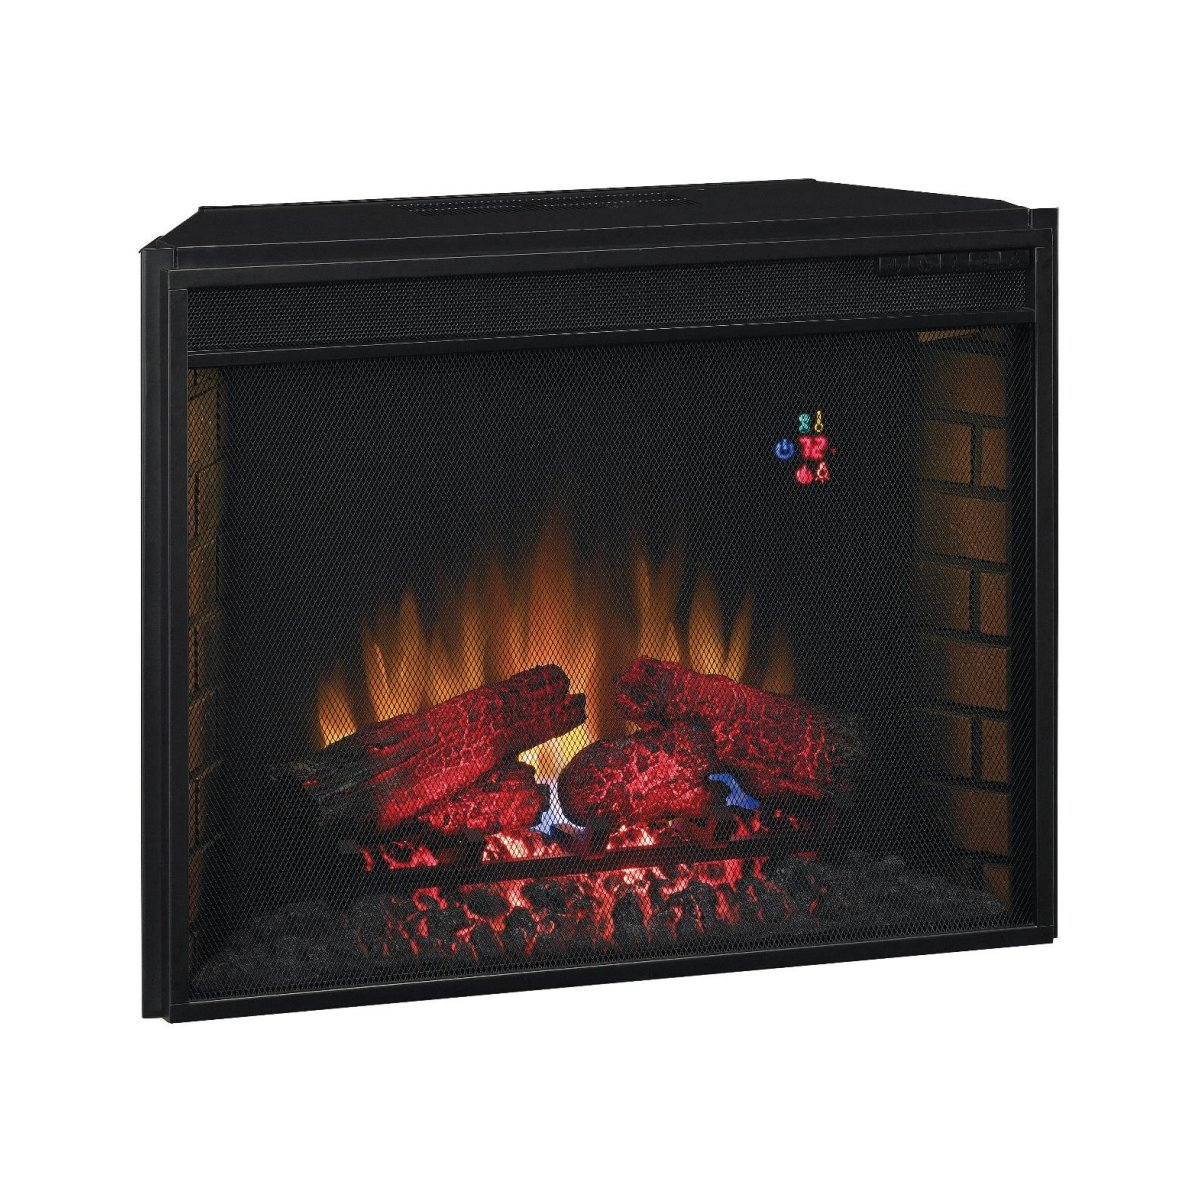 28in Electric Fireplace Insert